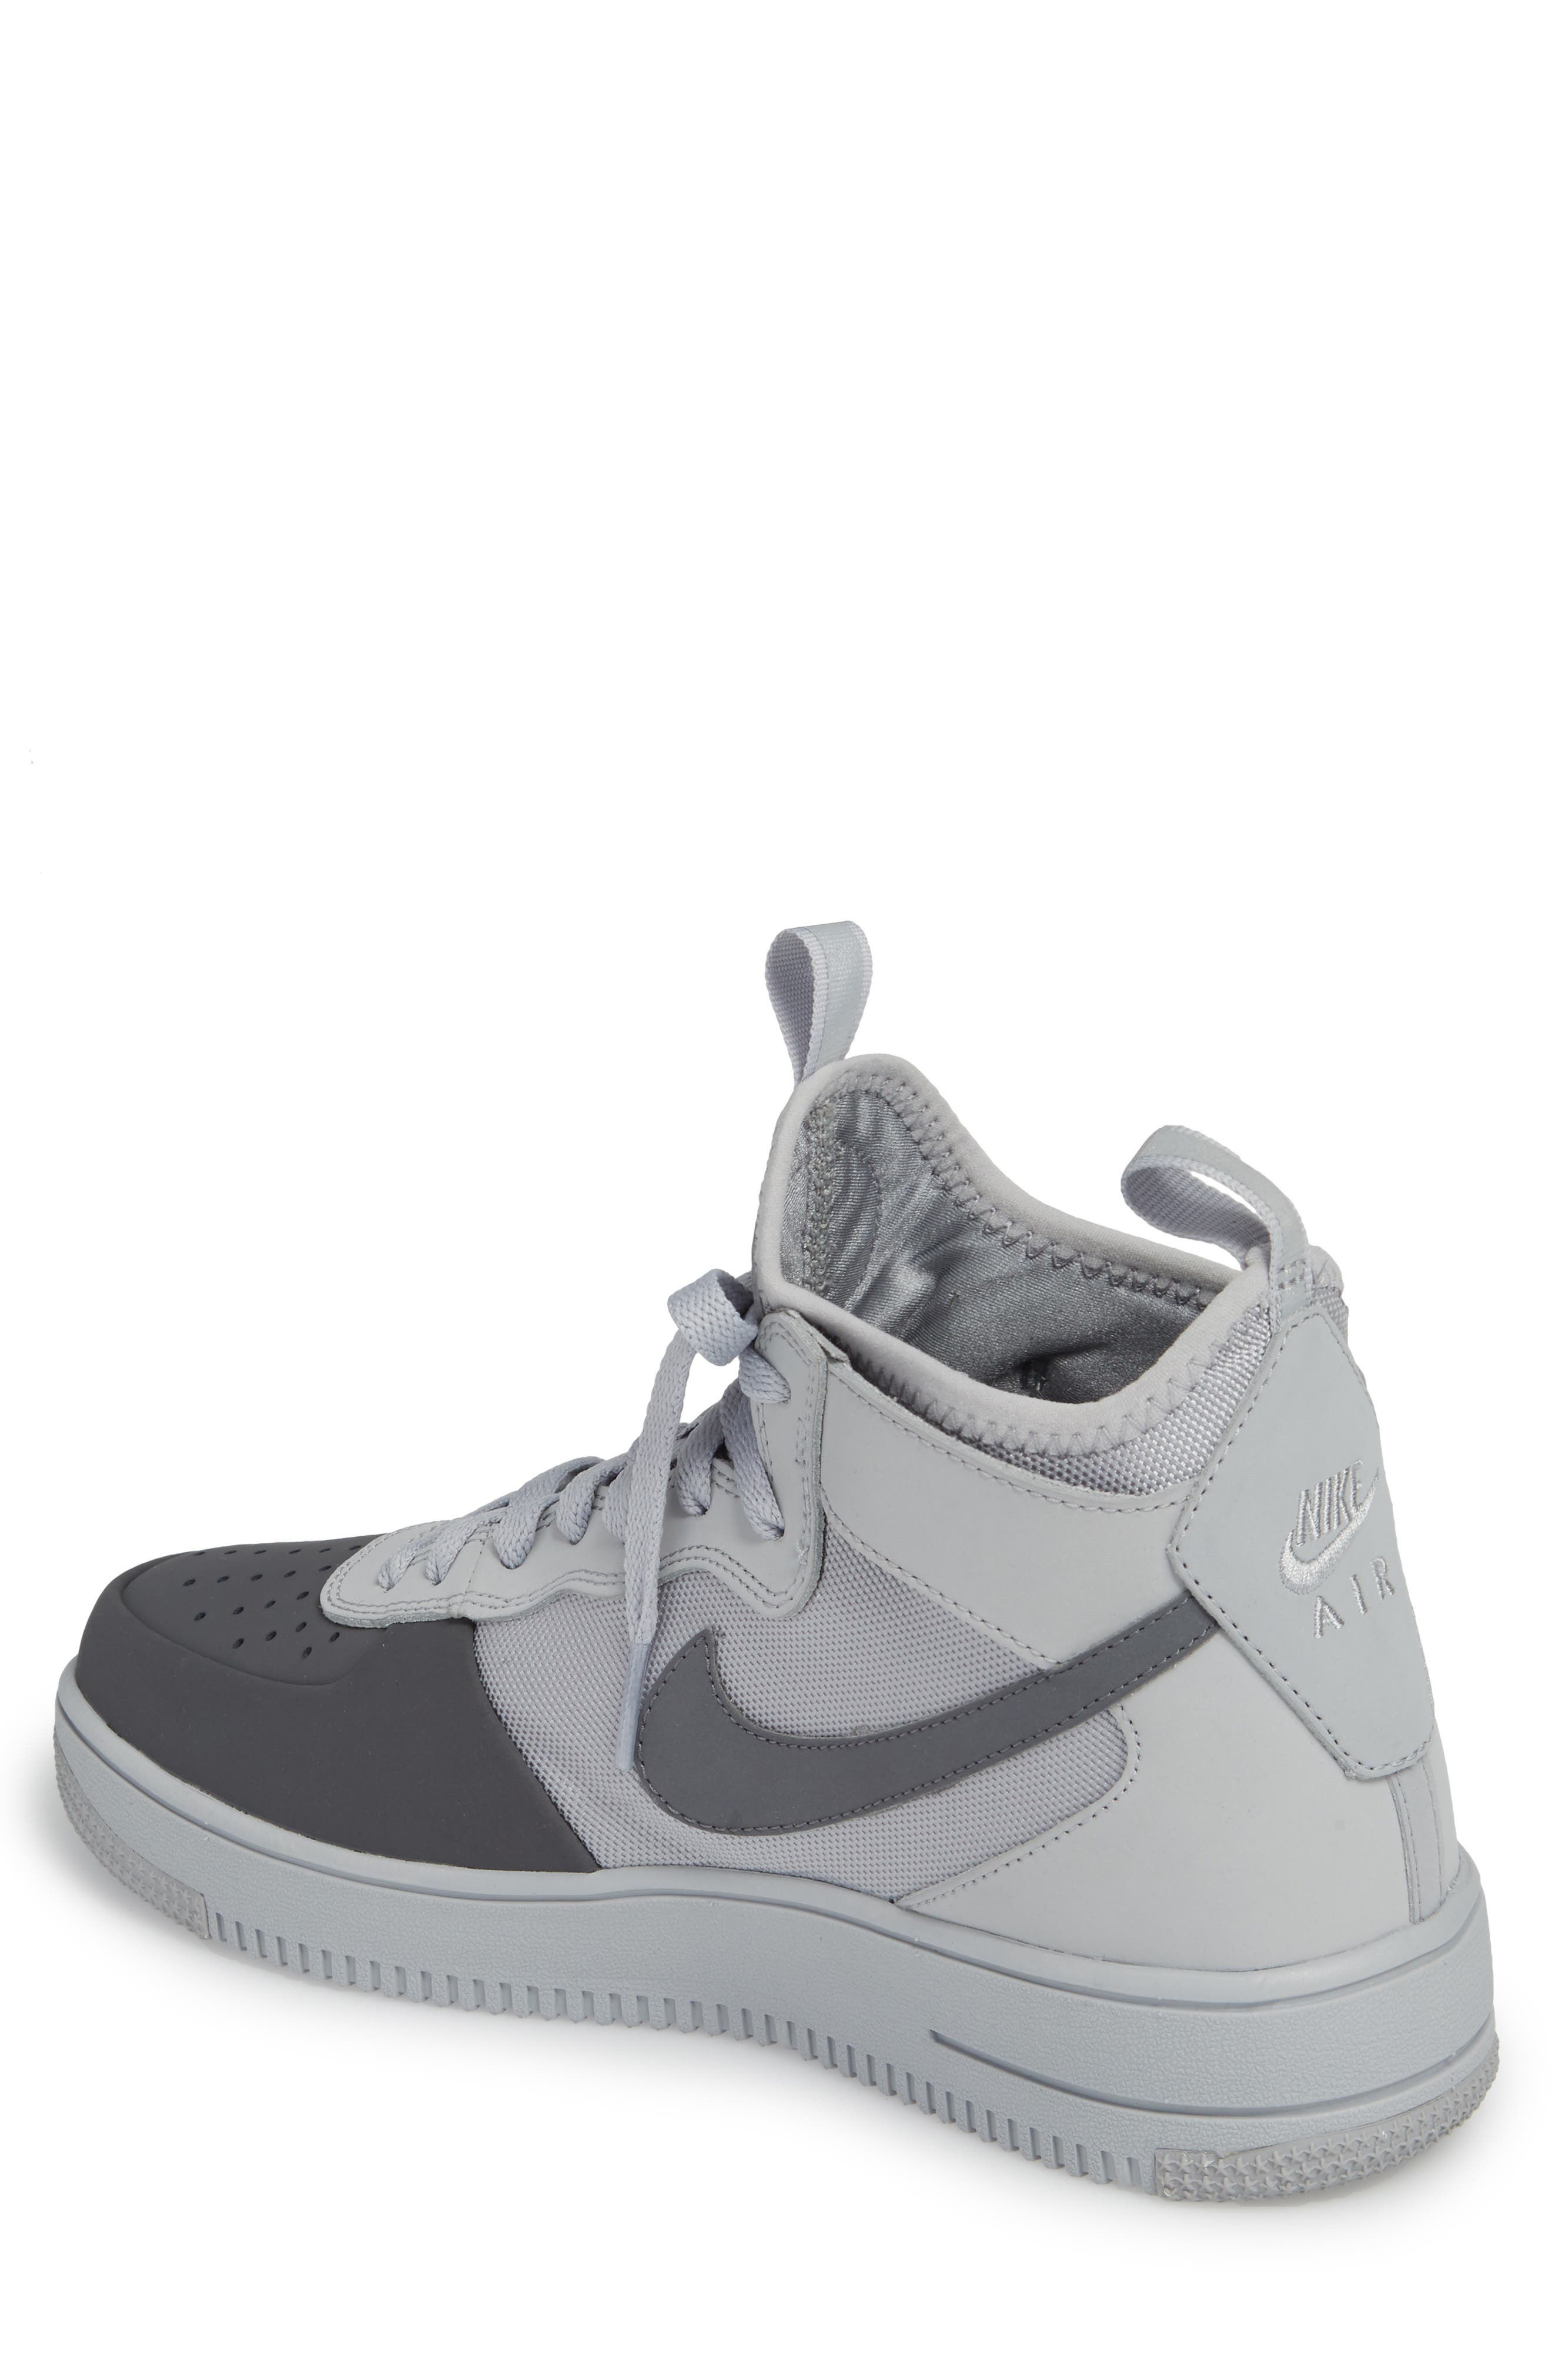 Air Force 1 Ultraforce Mid Tech Sneaker,                             Alternate thumbnail 2, color,                             Wolf Grey/ Dark Grey